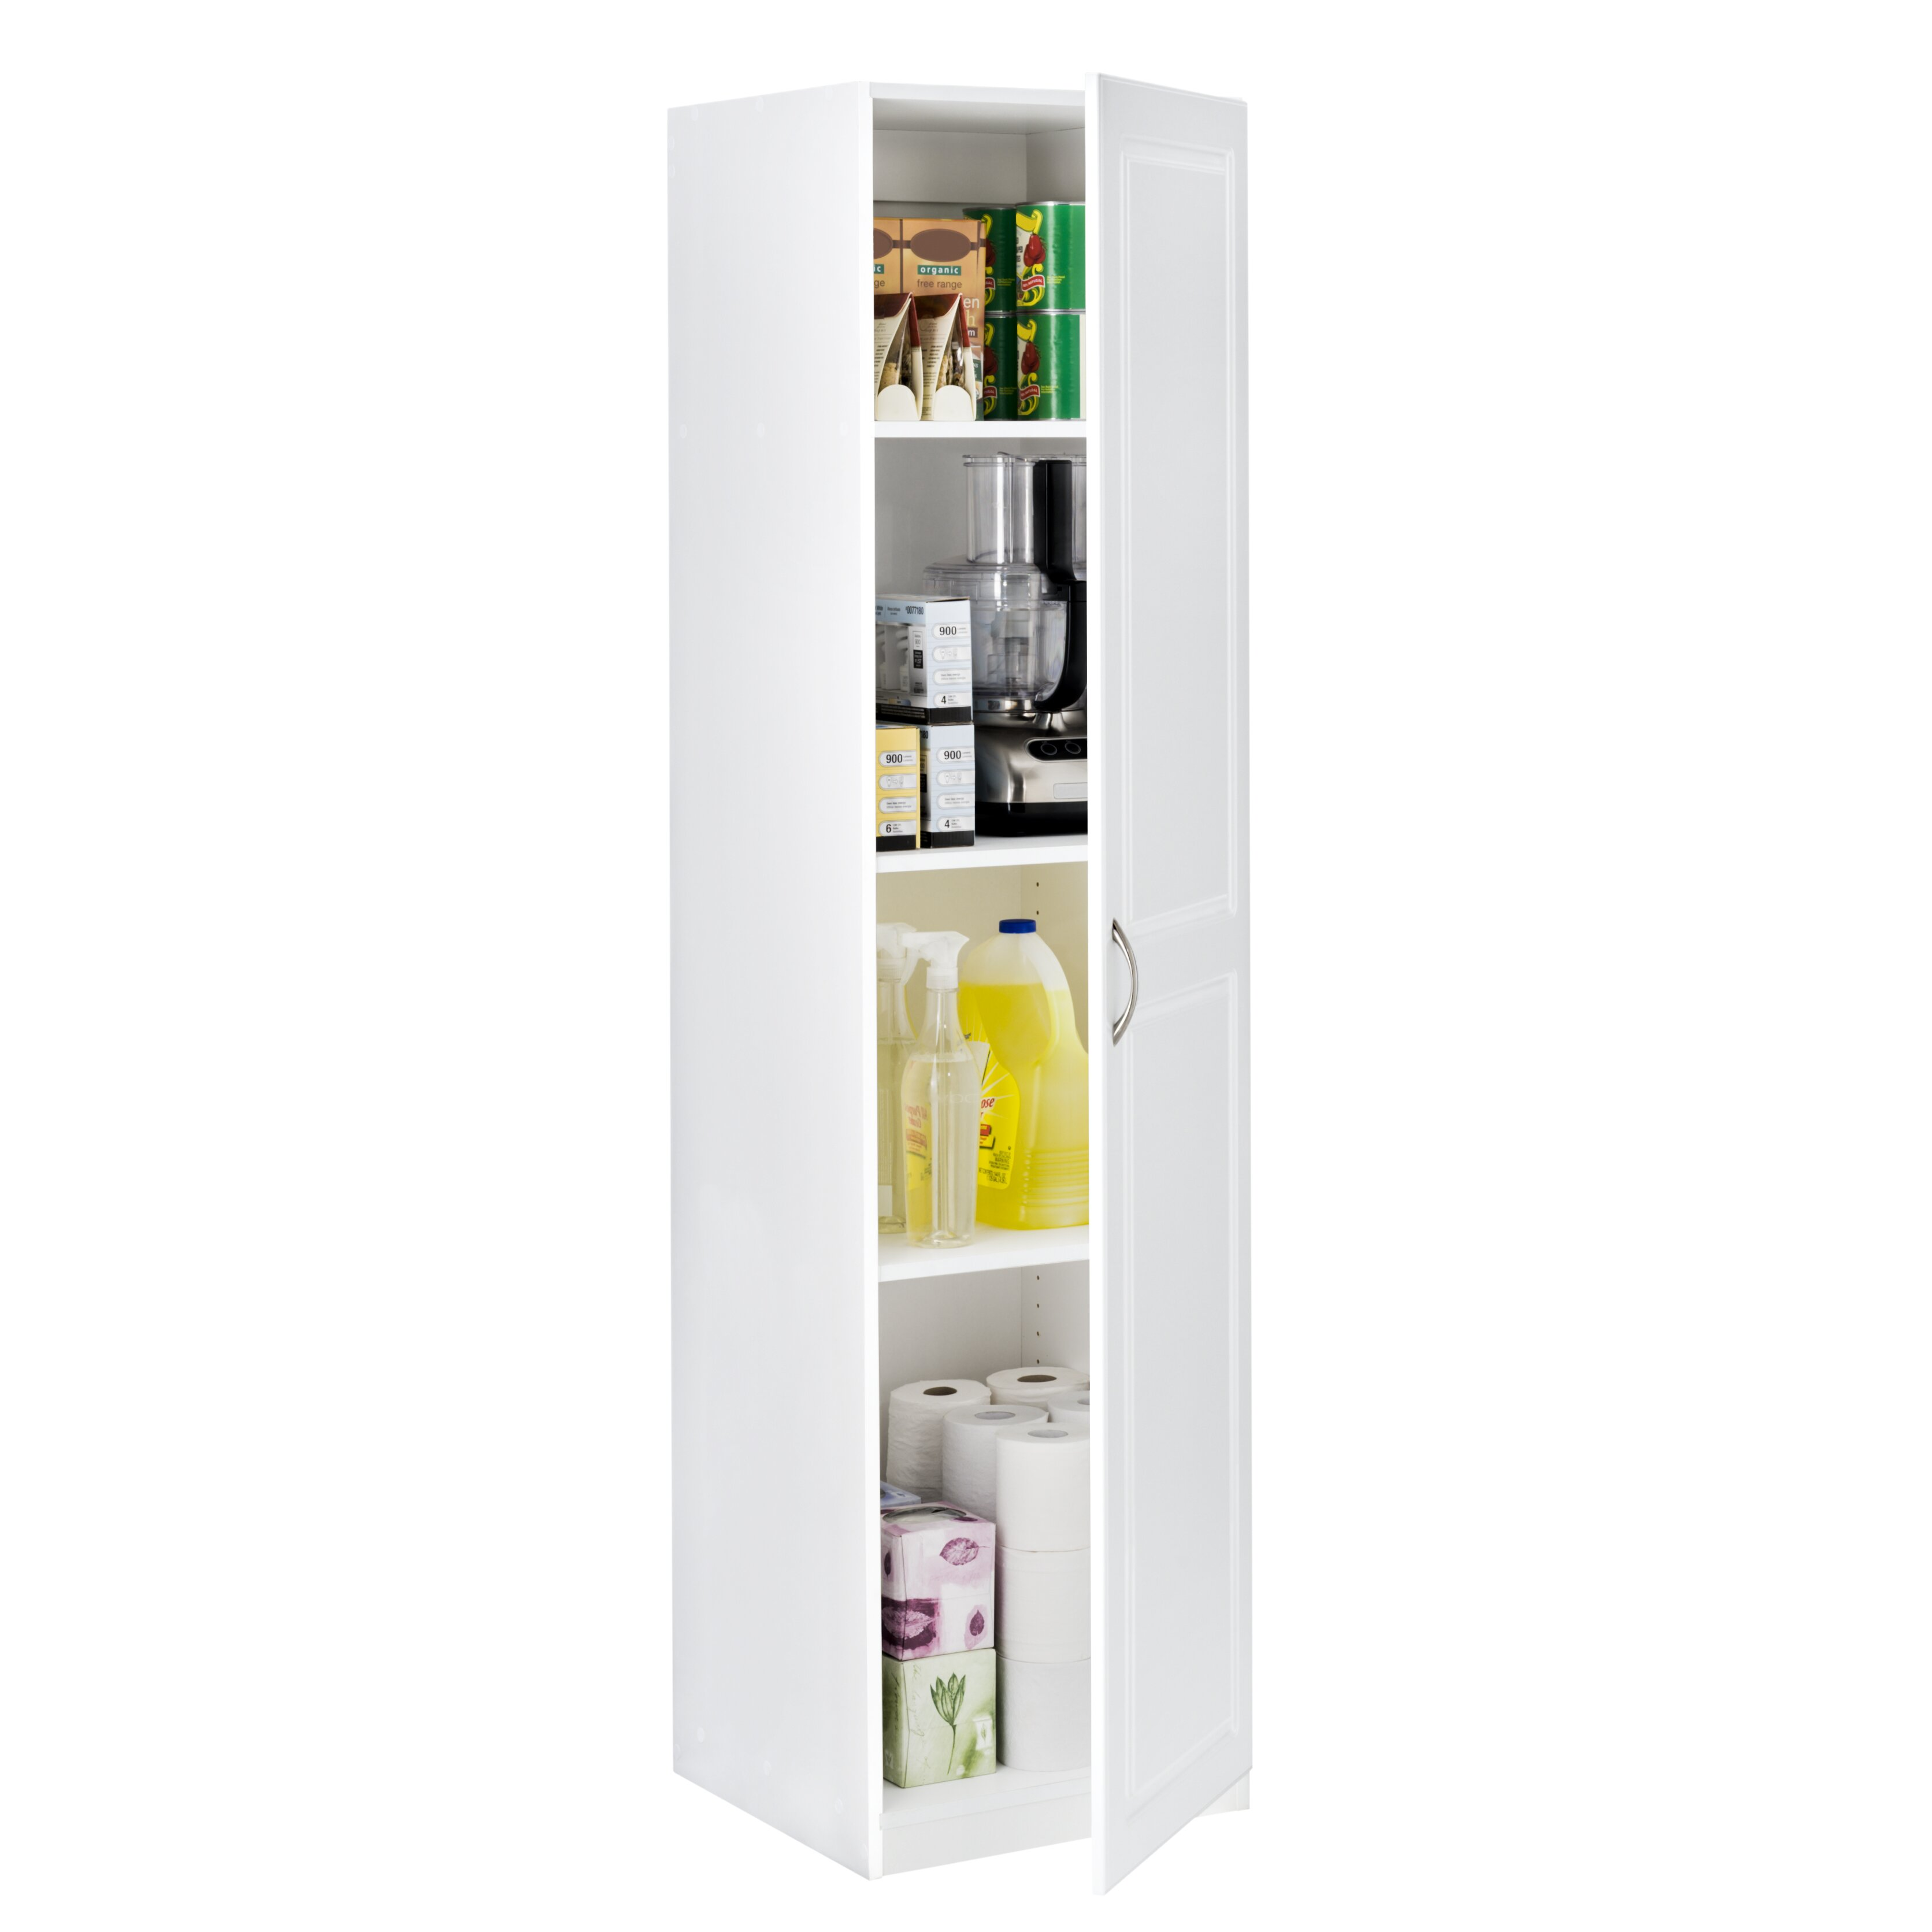 18 Storage Cabinet Closetmaid Dimensions 7173 H X 1799 W X 1812 D Single Door